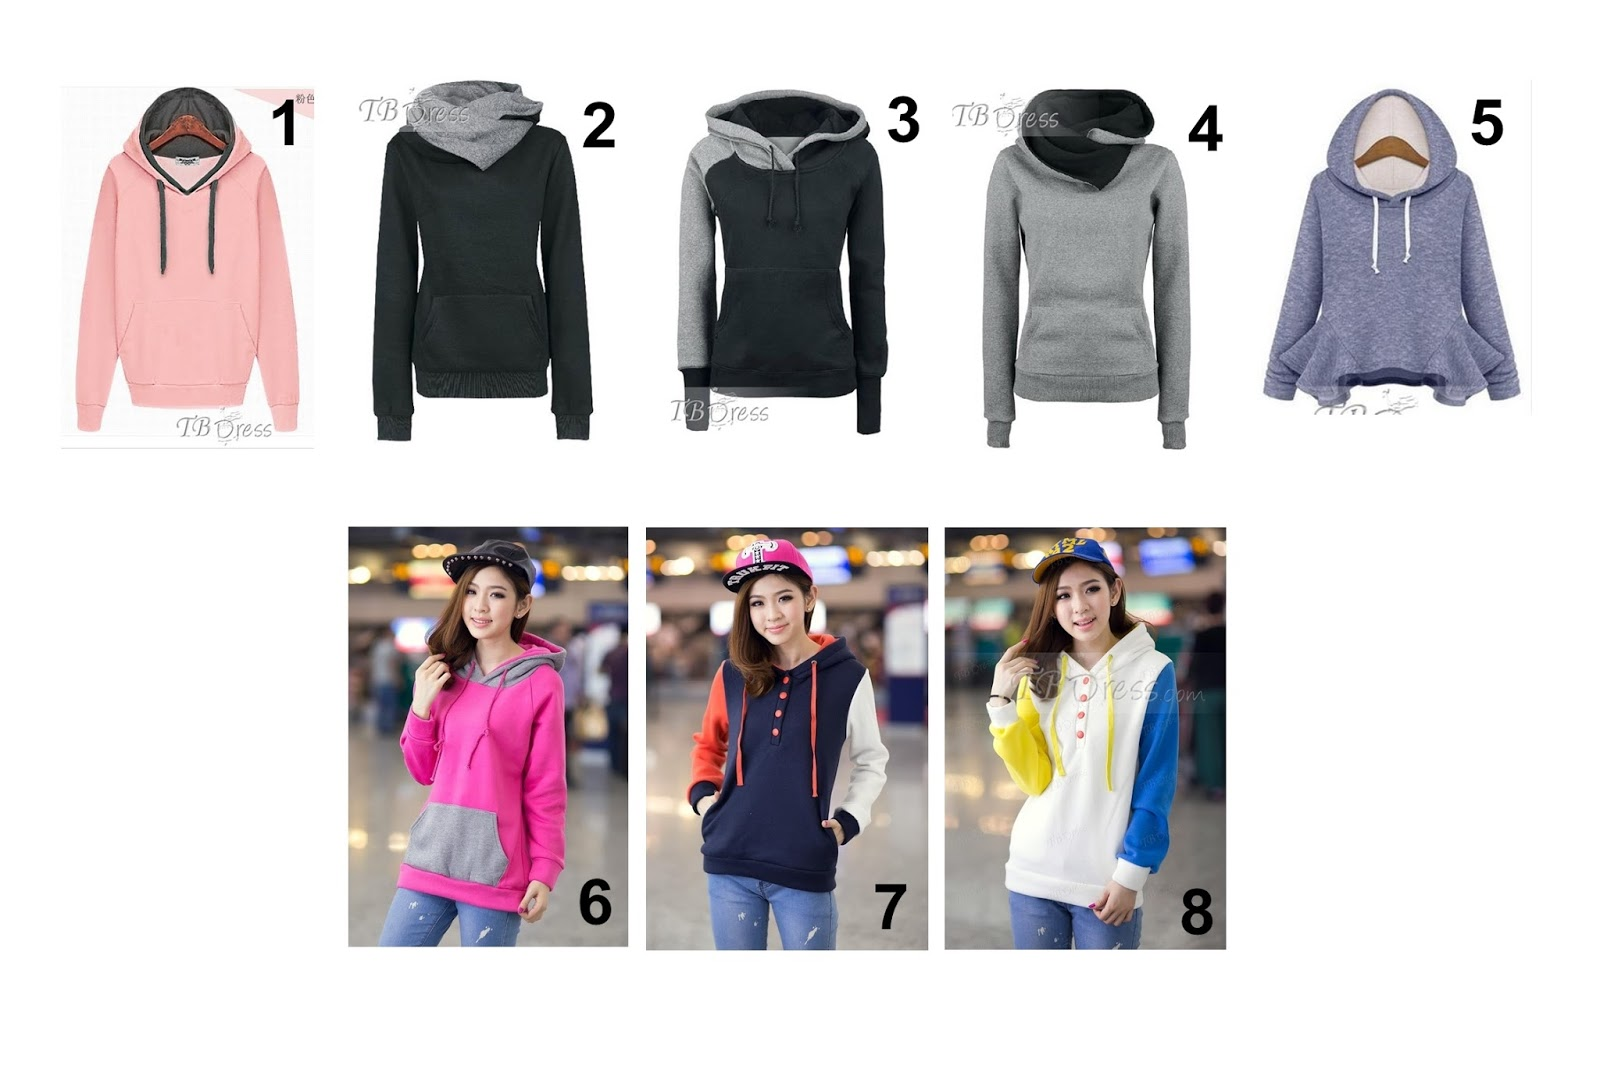 http://www.tbdress.com/Cheap-Hoodies-100520/